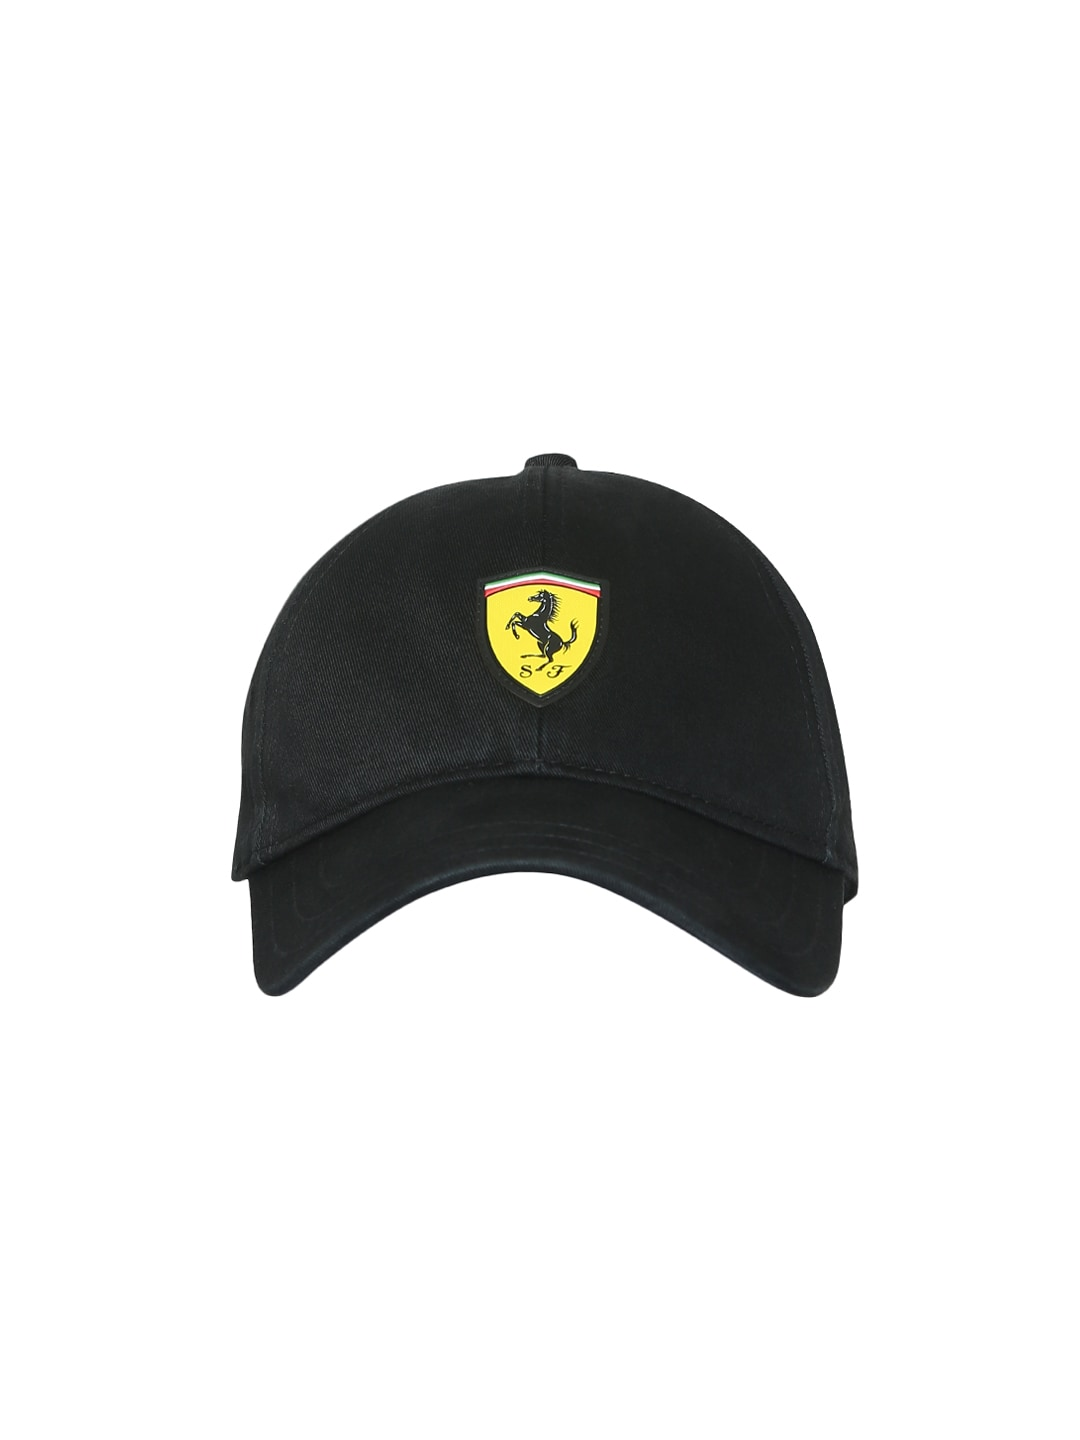 f02b4ad1e1e Hats   Caps For Men - Shop Mens Caps   Hats Online at best price ...